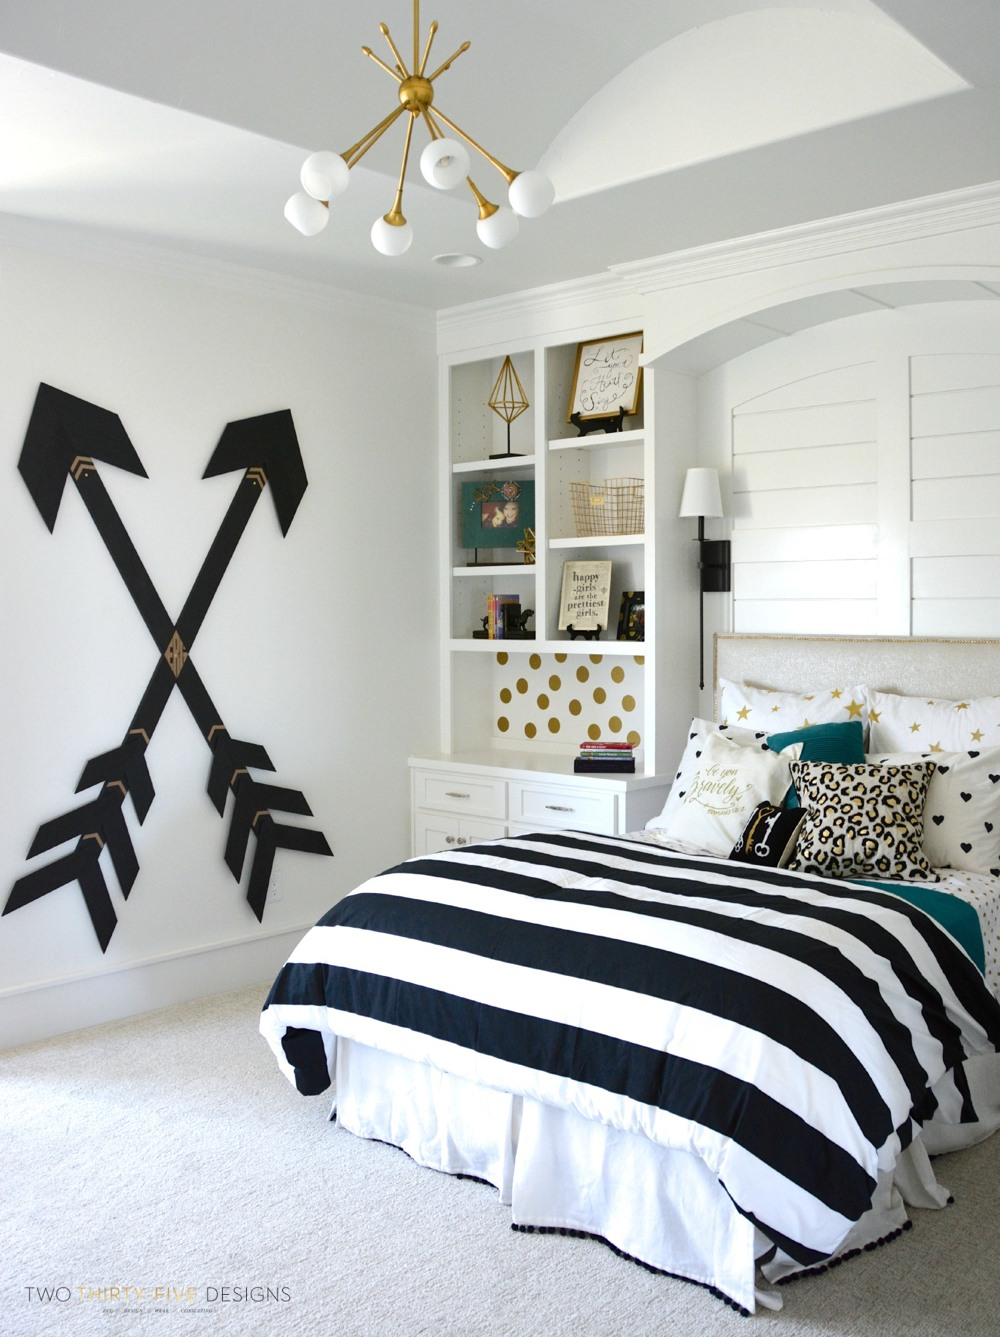 23 stylish teen girl s bedroom ideas homelovr rh homelovr com  bedroom wall ideas for teenage girl